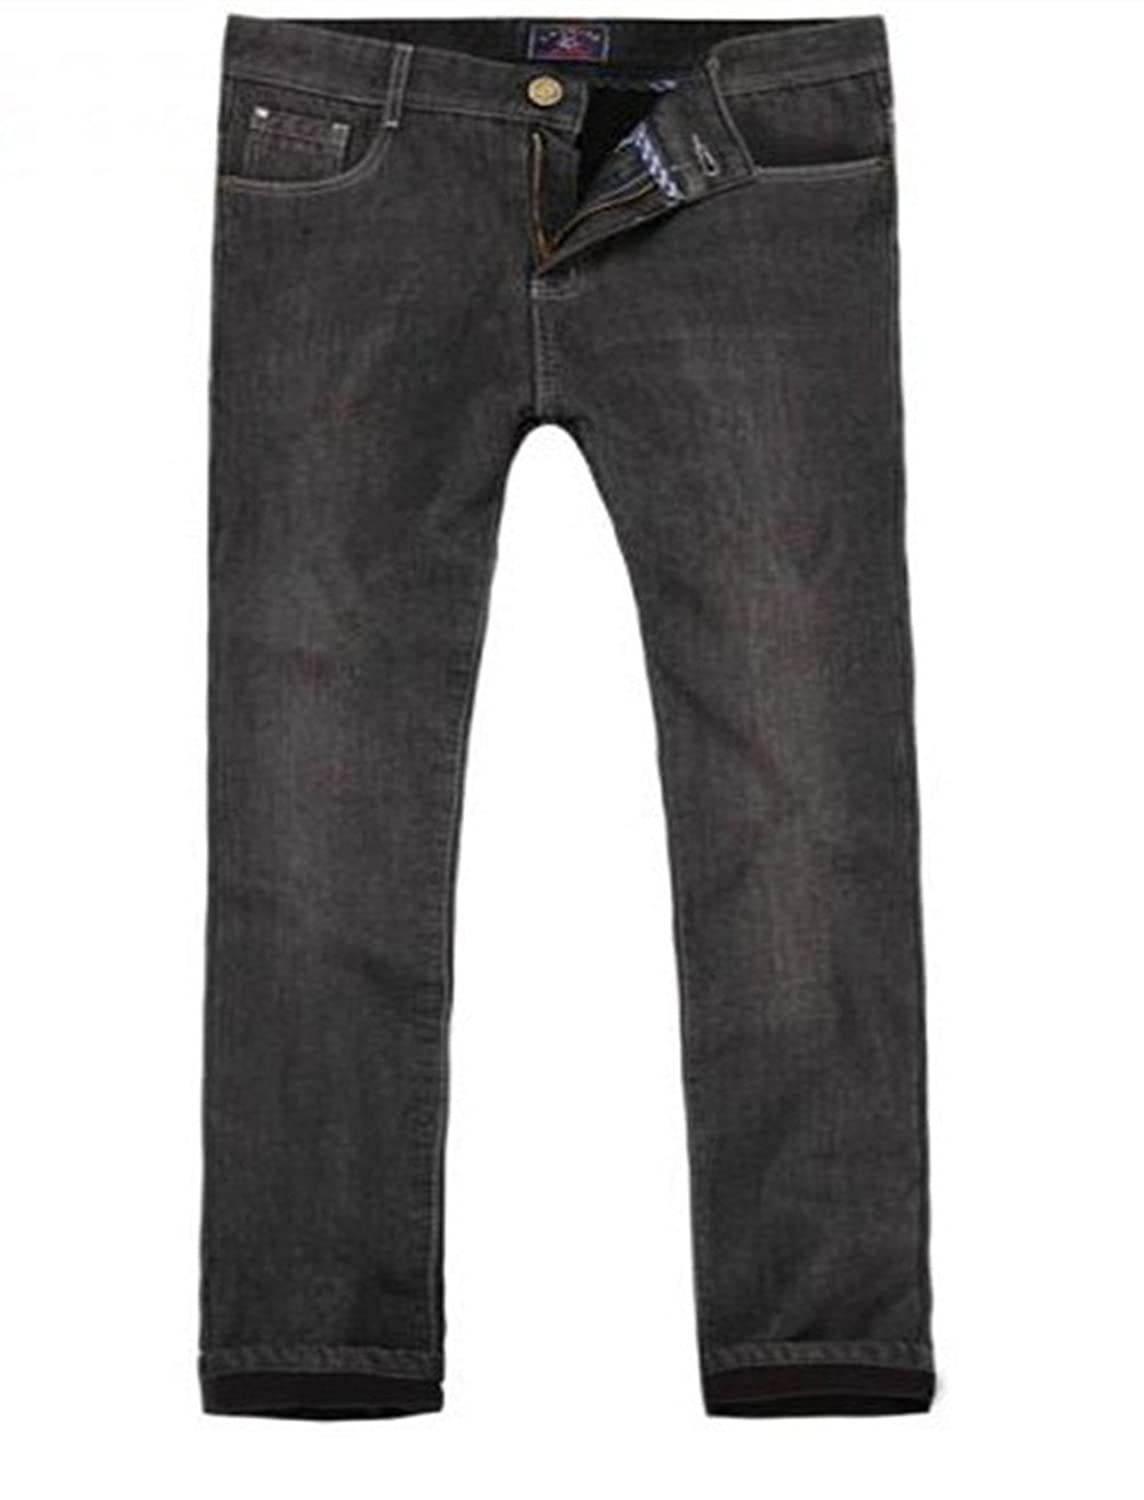 U-SHARK Men?è—Ÿs Denim Winter Jeans Warm Lined Thick Casual Trousers KZ29